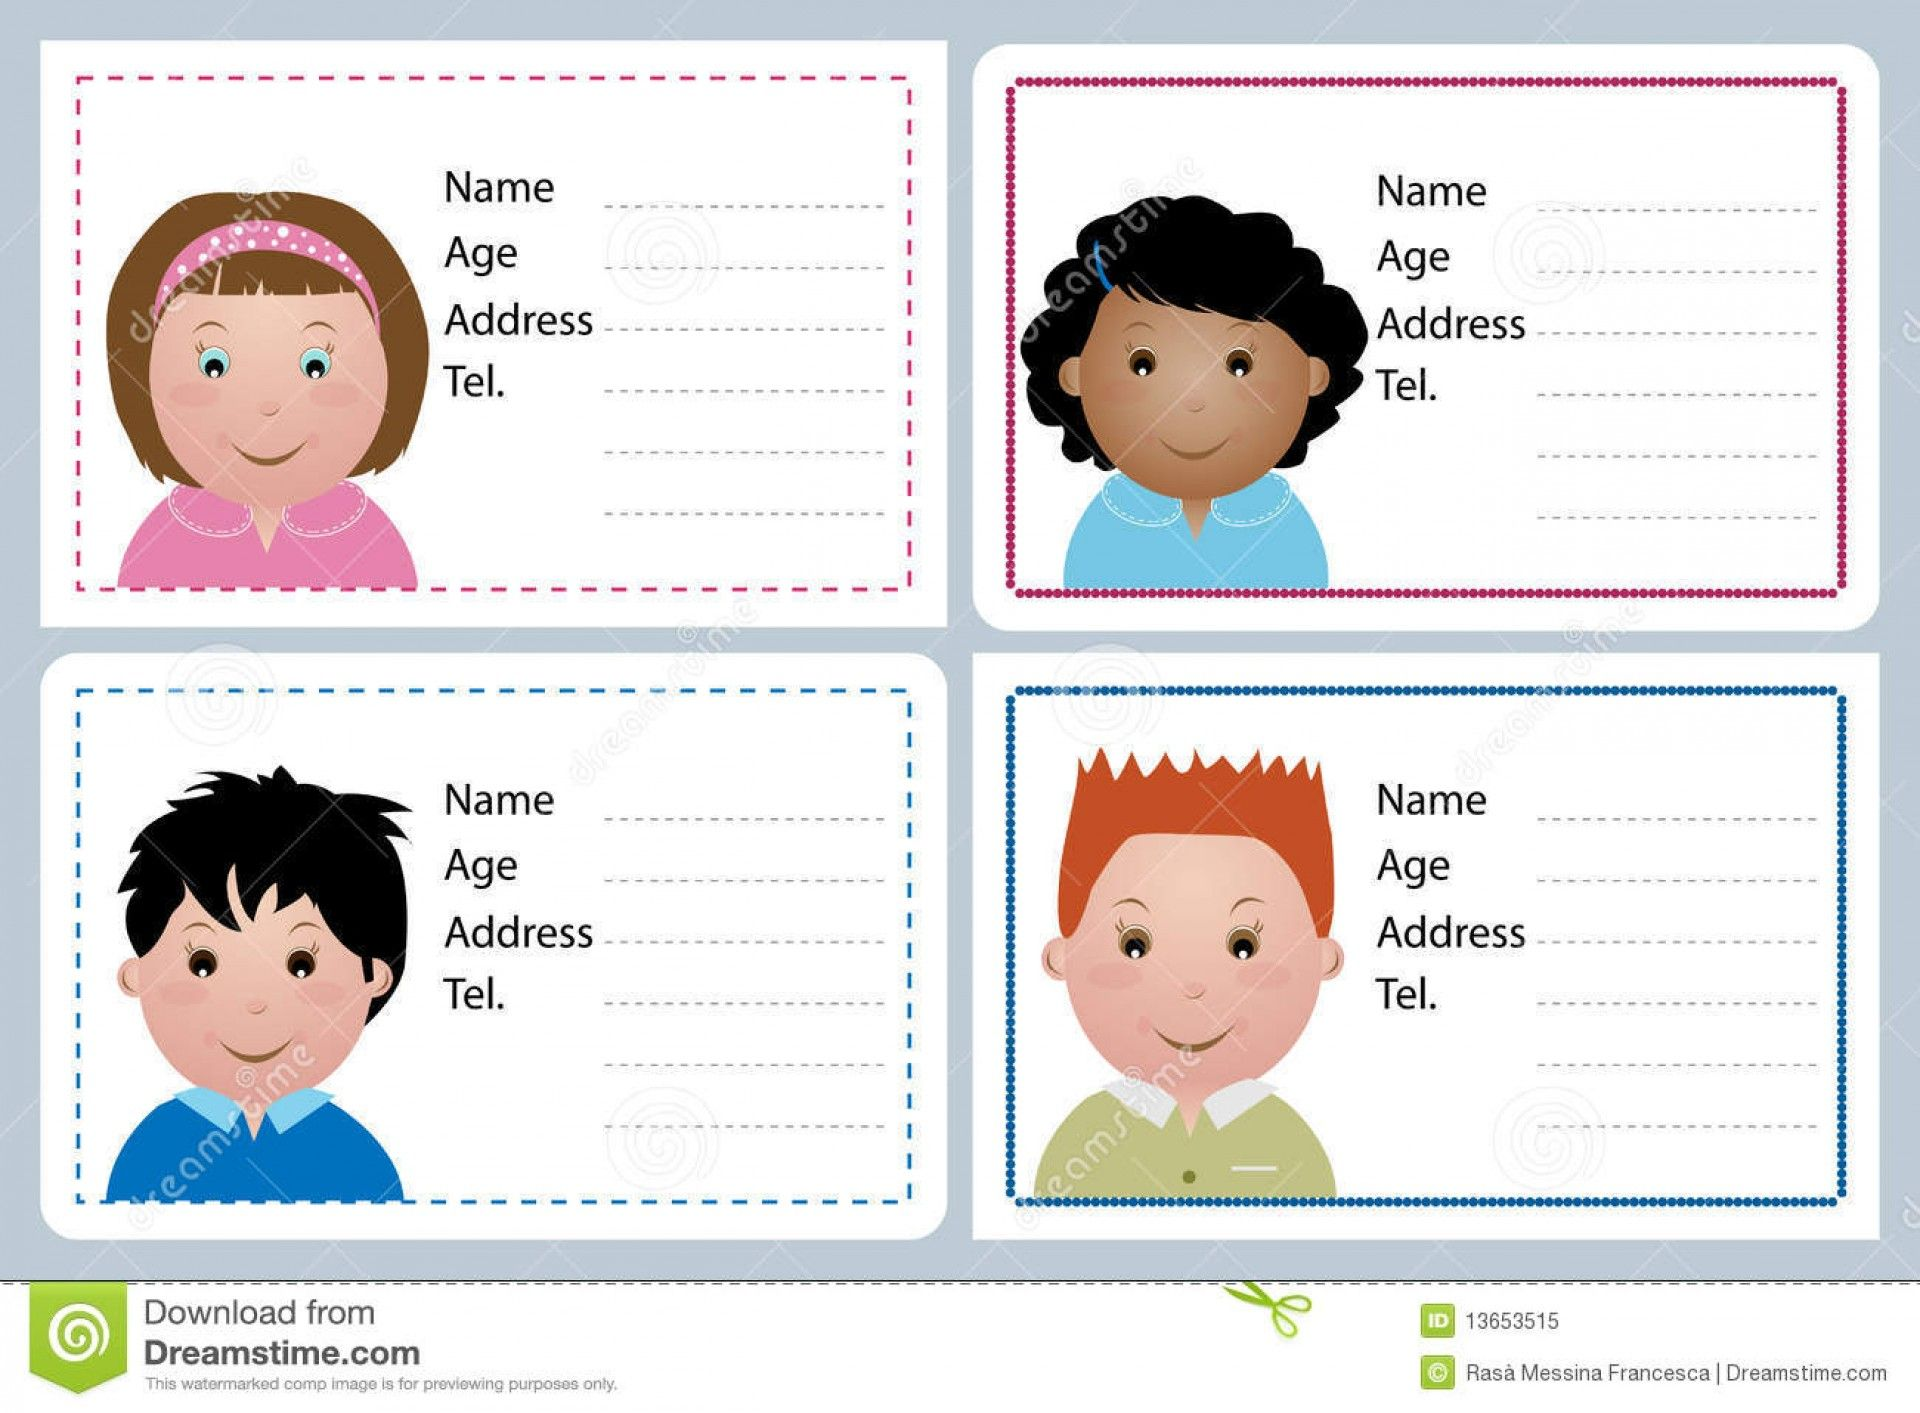 Astounding Child Id Card Template Free Ideas Download With Regard To Id Card Template For Kids Great Id Card Template Free Business Card Templates Name Cards